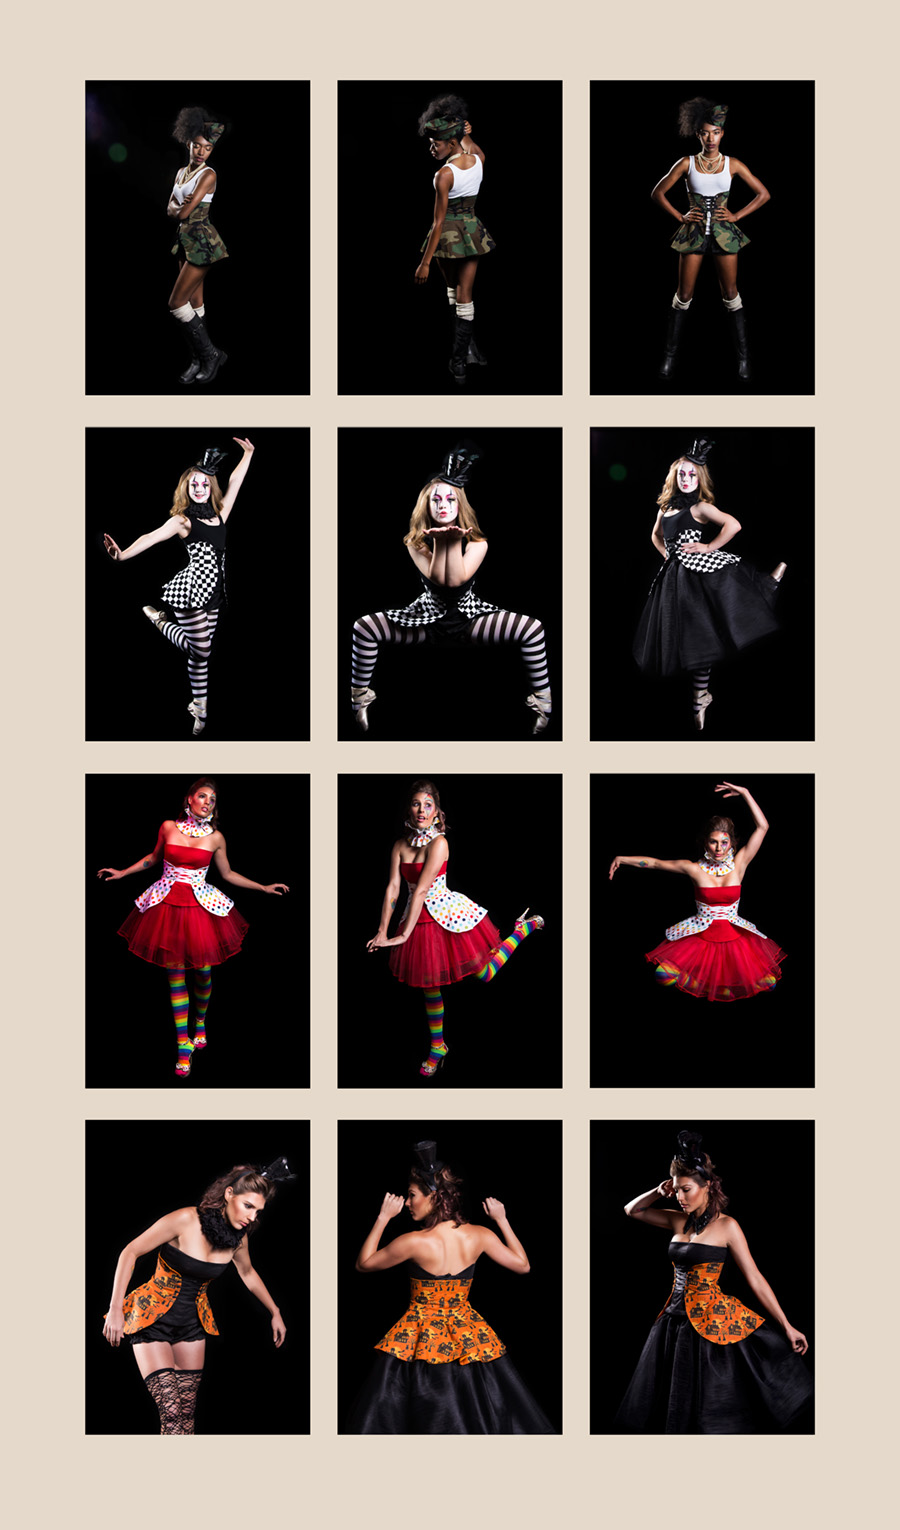 Collage of photos by Britt Smith Photography of Halloween Costumes custom made by Trapped in Time Designs in New Orleans Louisiana. Clothing modeled by Ashara Grimes, ballerina, Olivia Ernst and Amber Carollo